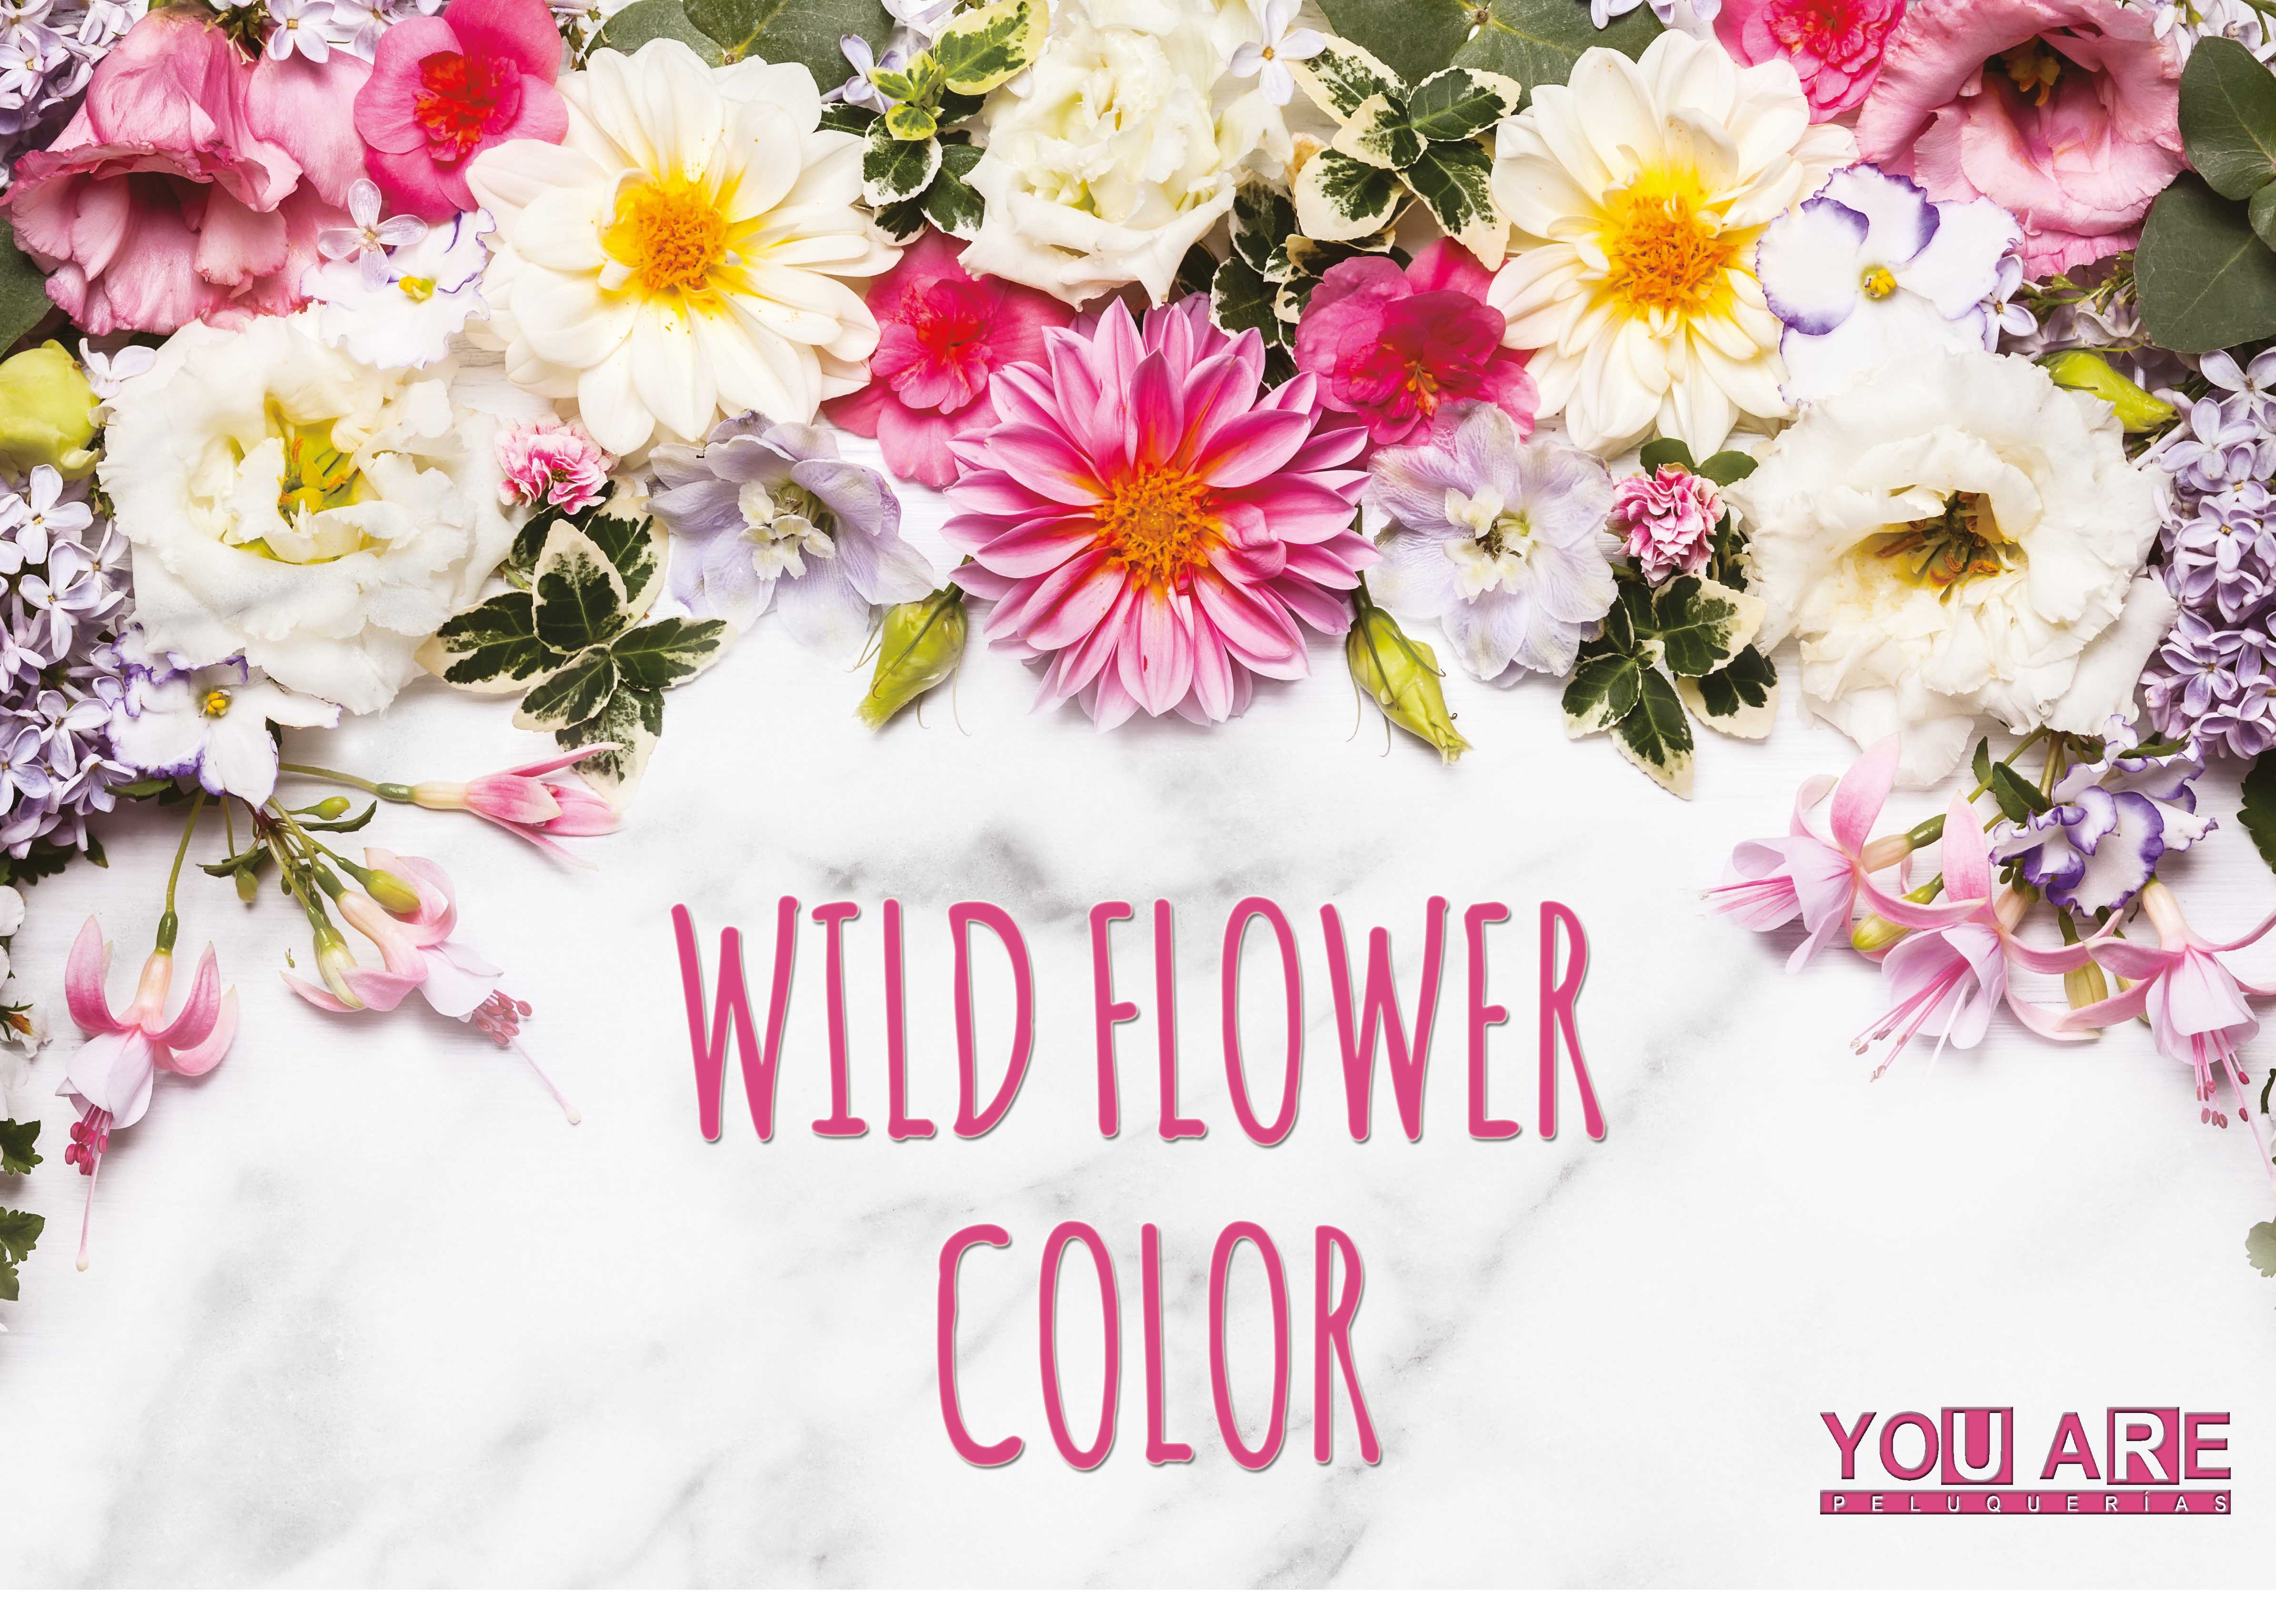 WILD FLOWER COLOR